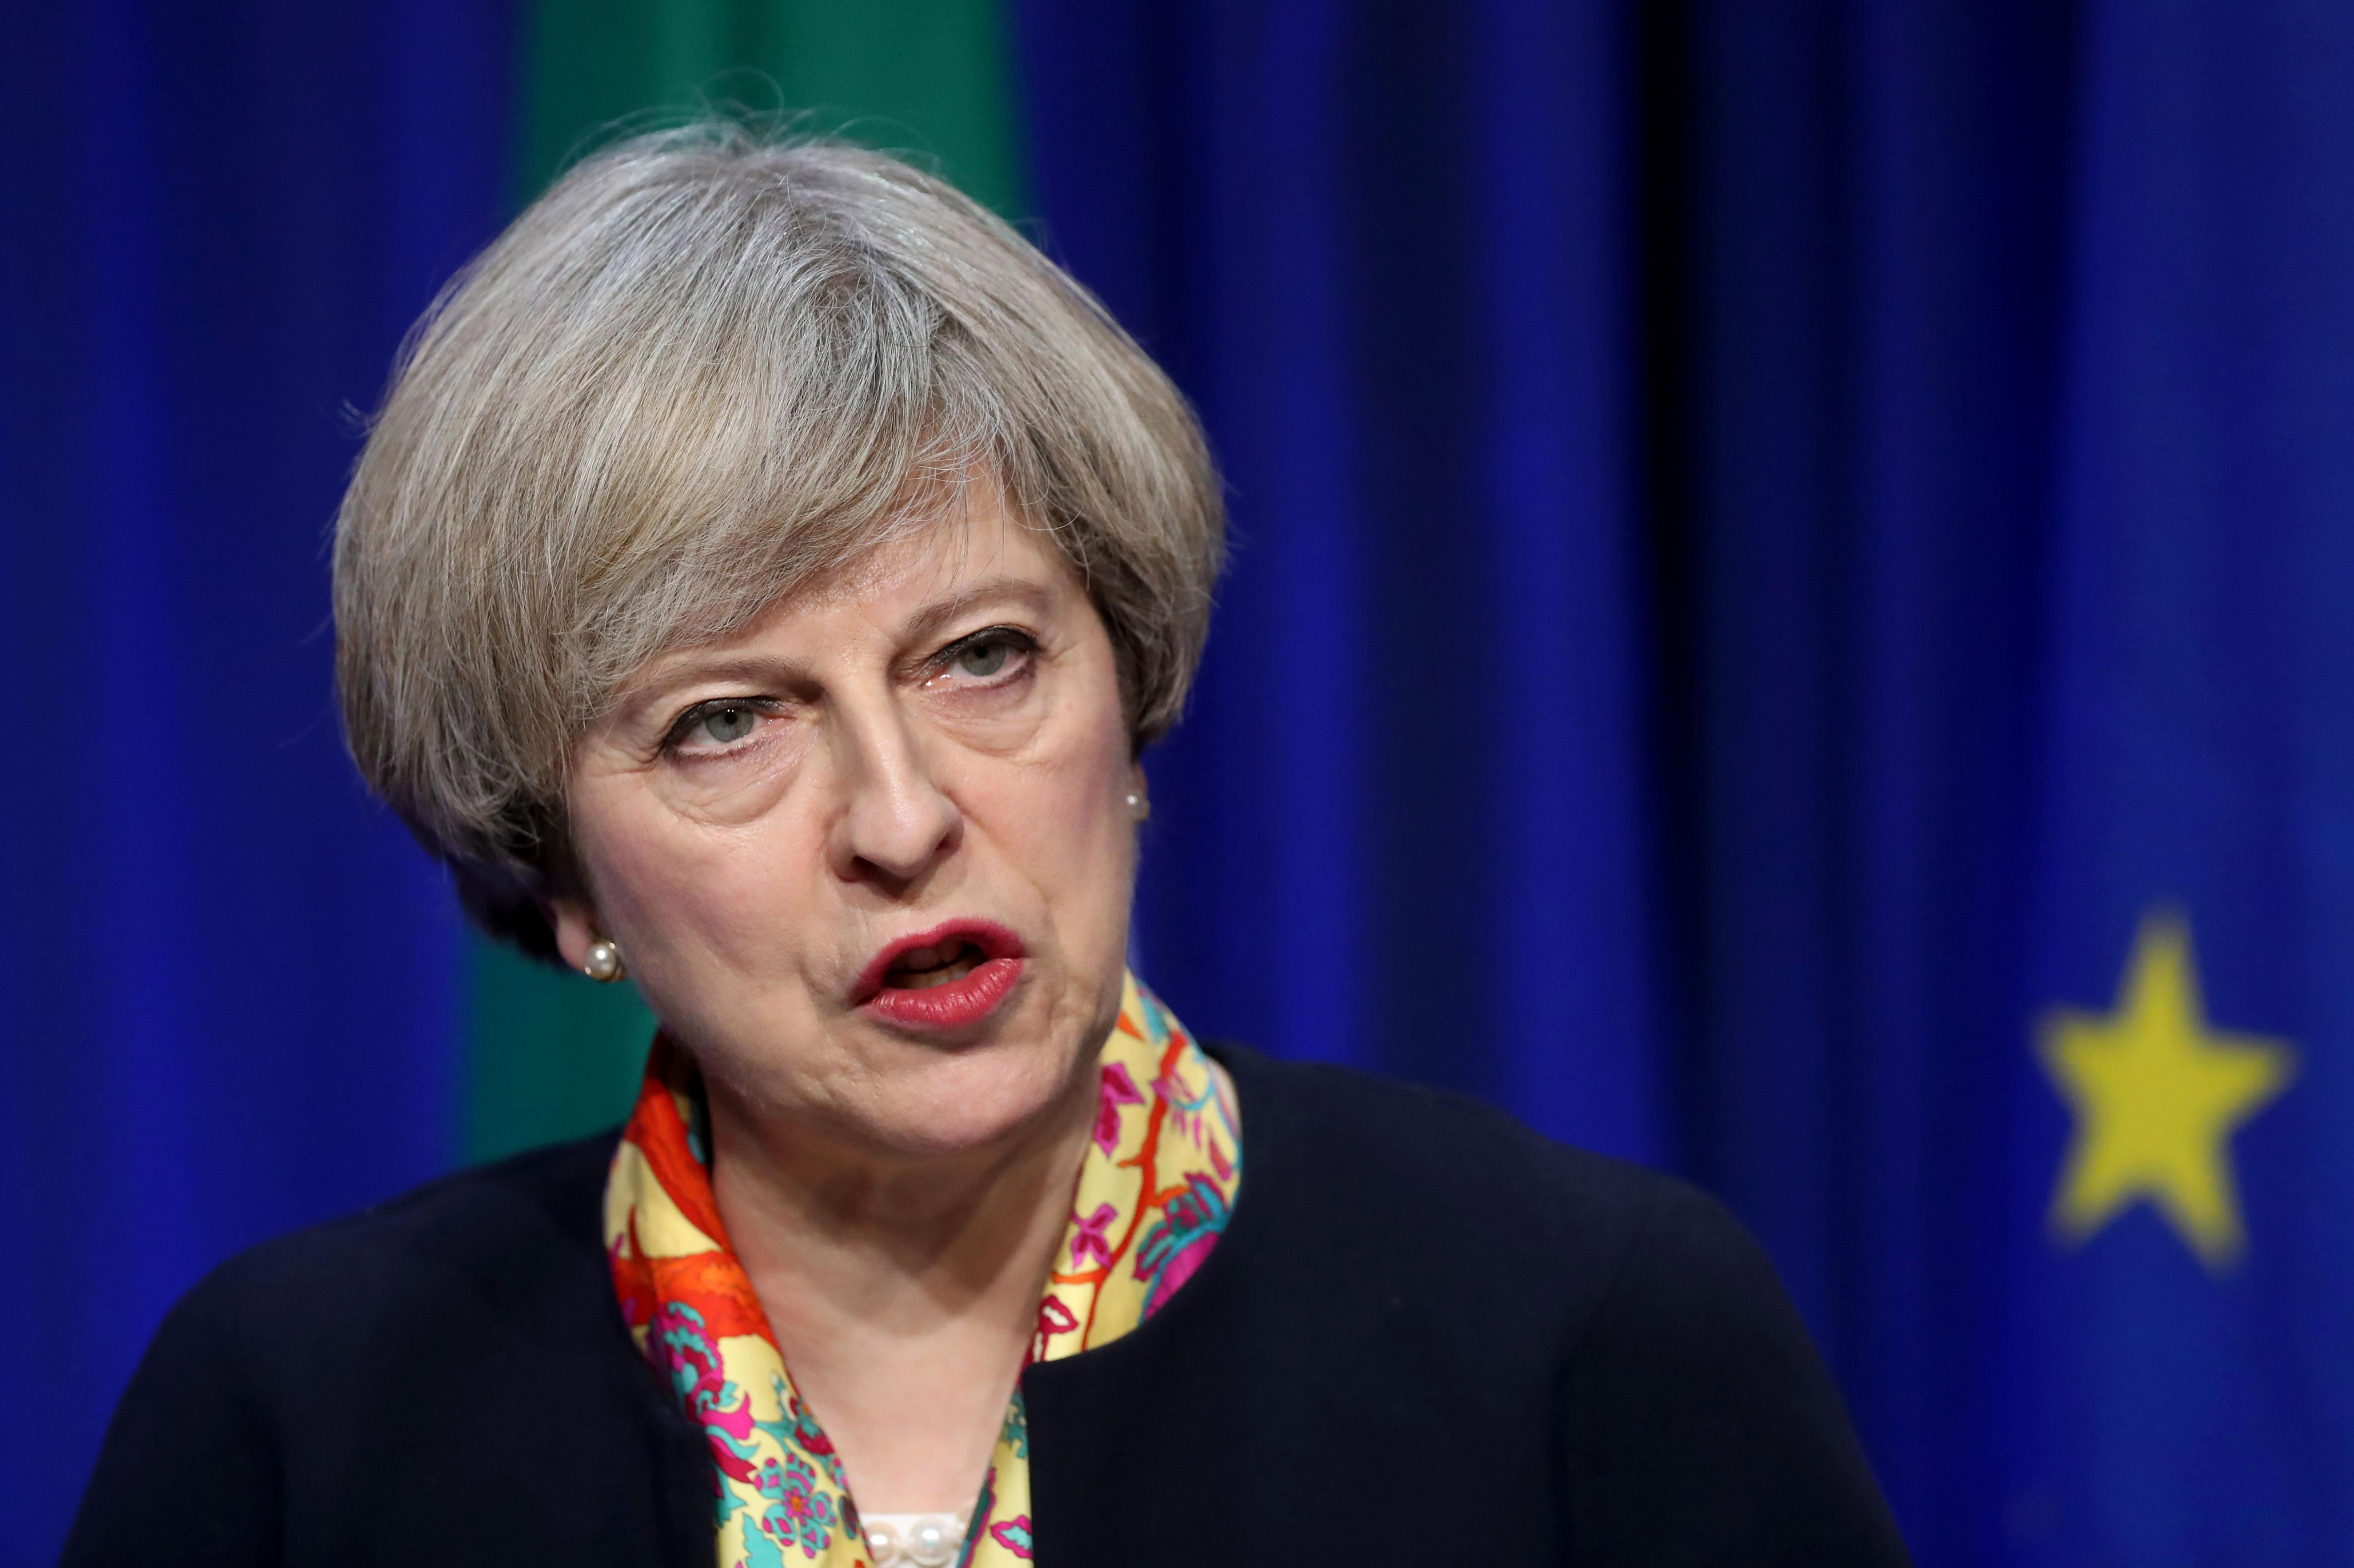 Theresa May in crunch talks with Brexit rebels as furious Tories claim White Paper is 'dead in the water'